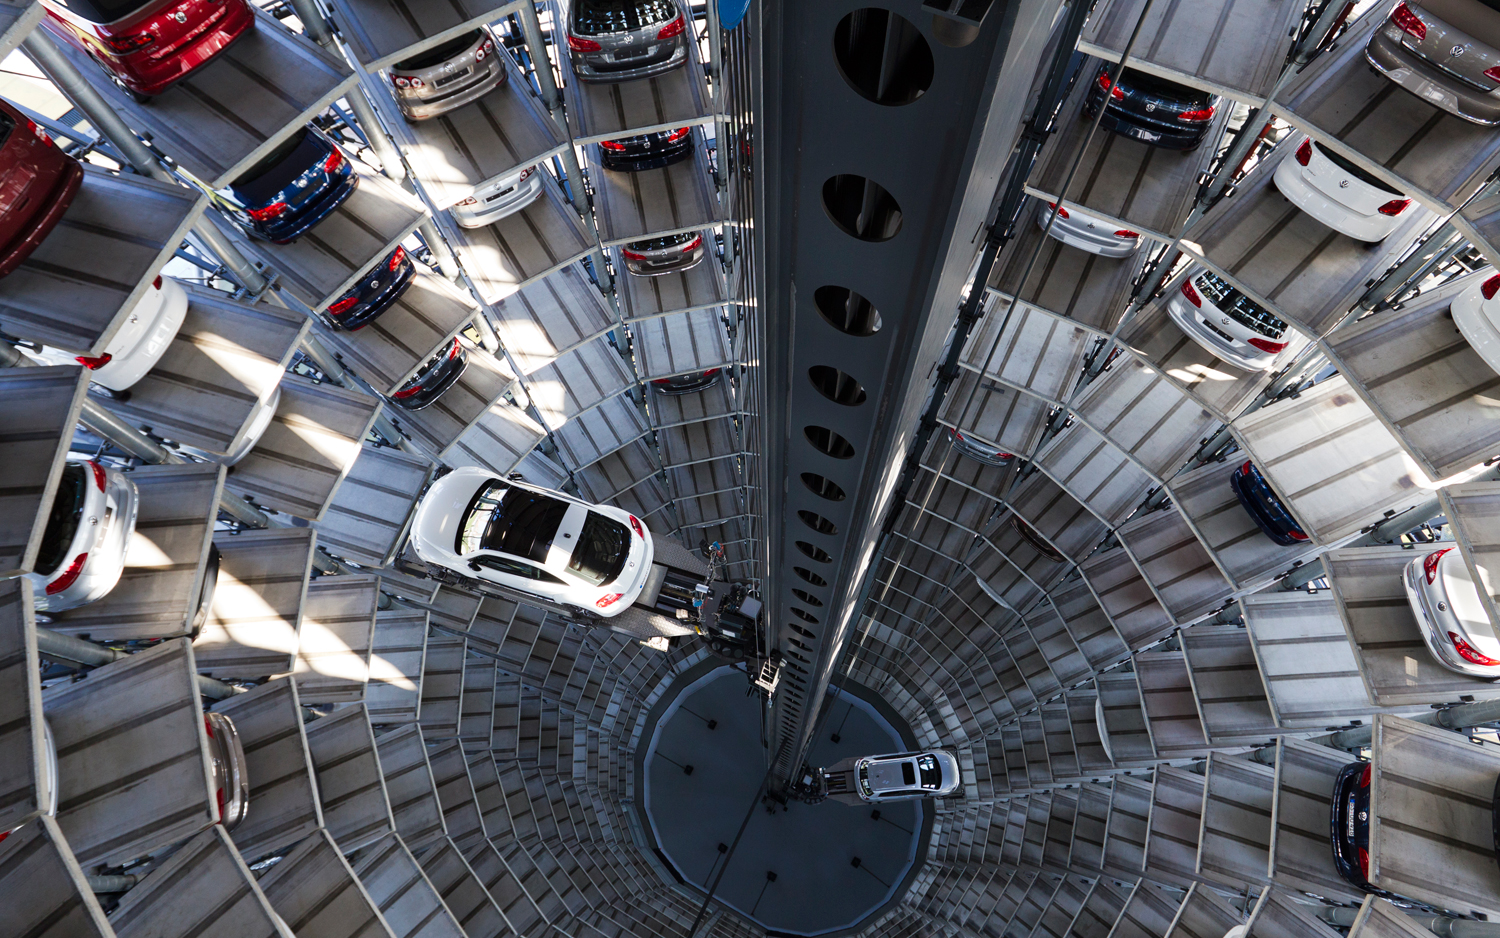 2012-volkswagen-beetle-in-autostadt-car-silo-interior-view